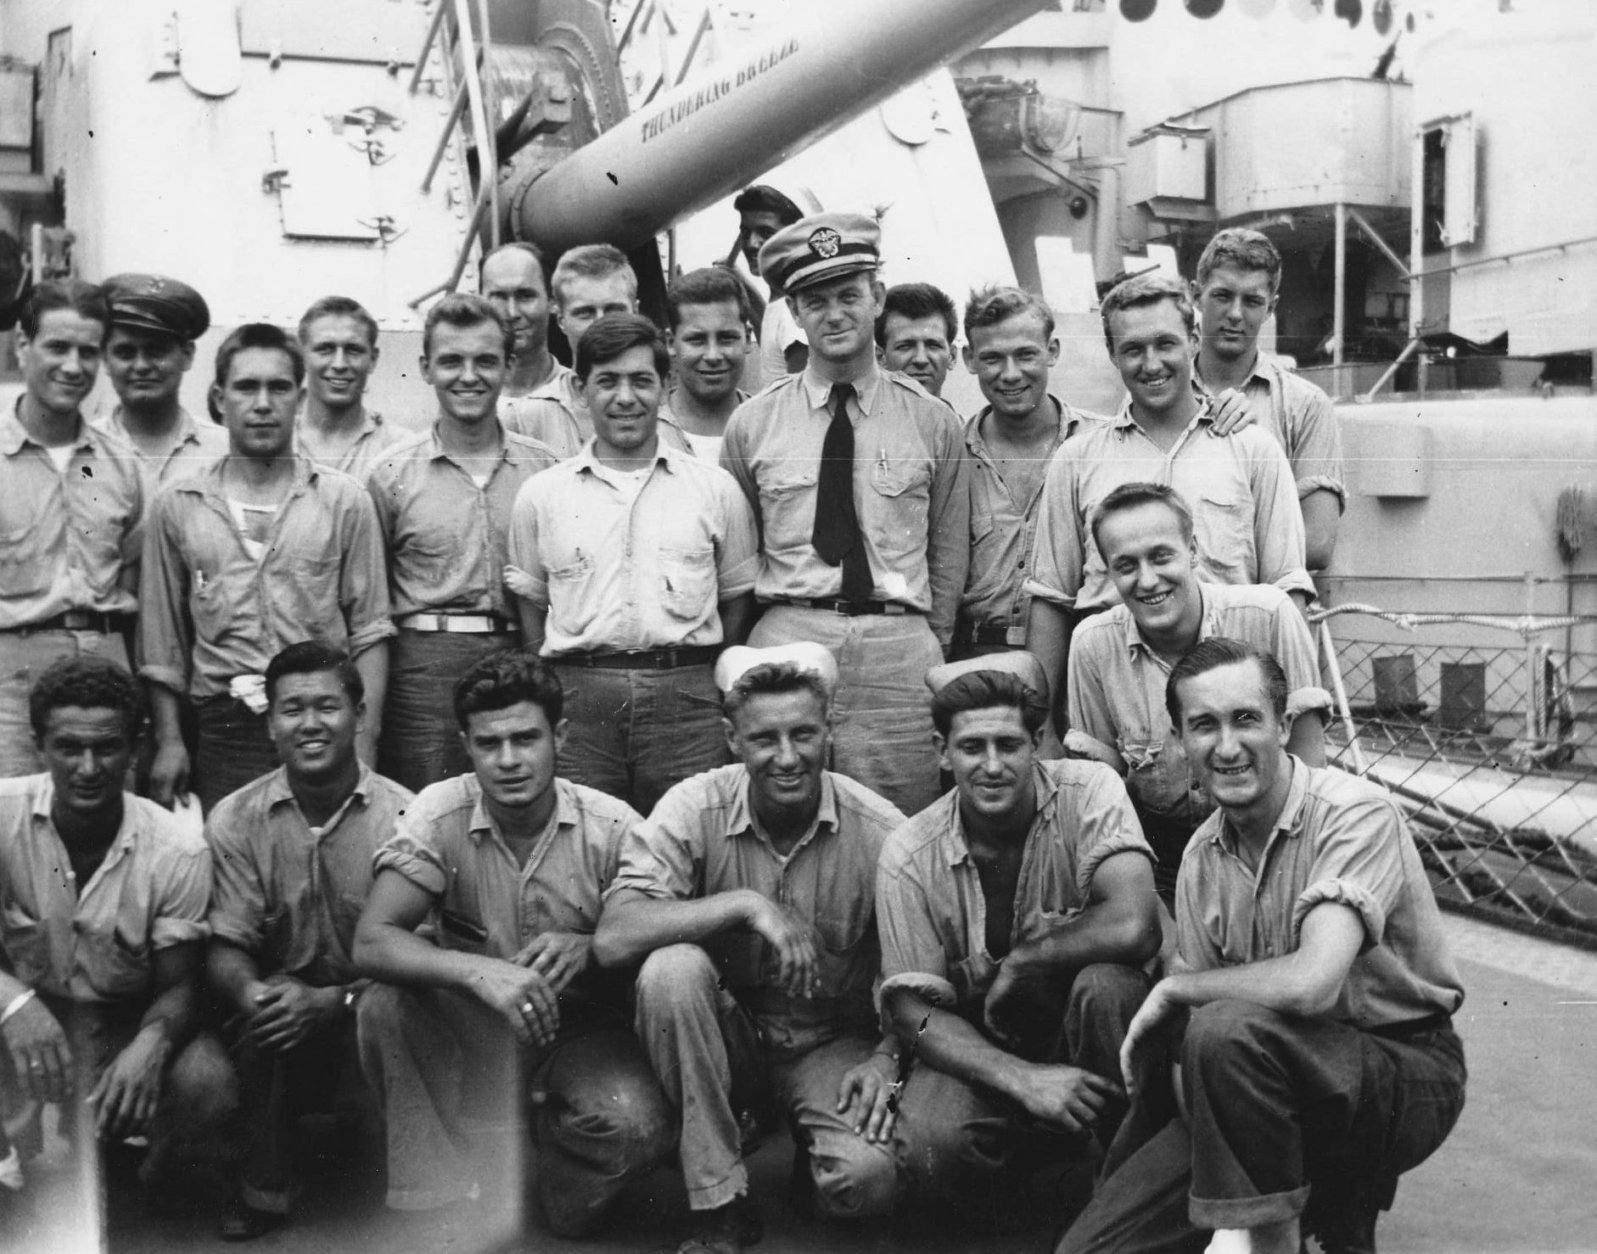 Members of the crew of the USS Herndon. (Courtesy Herndon Historical Society)